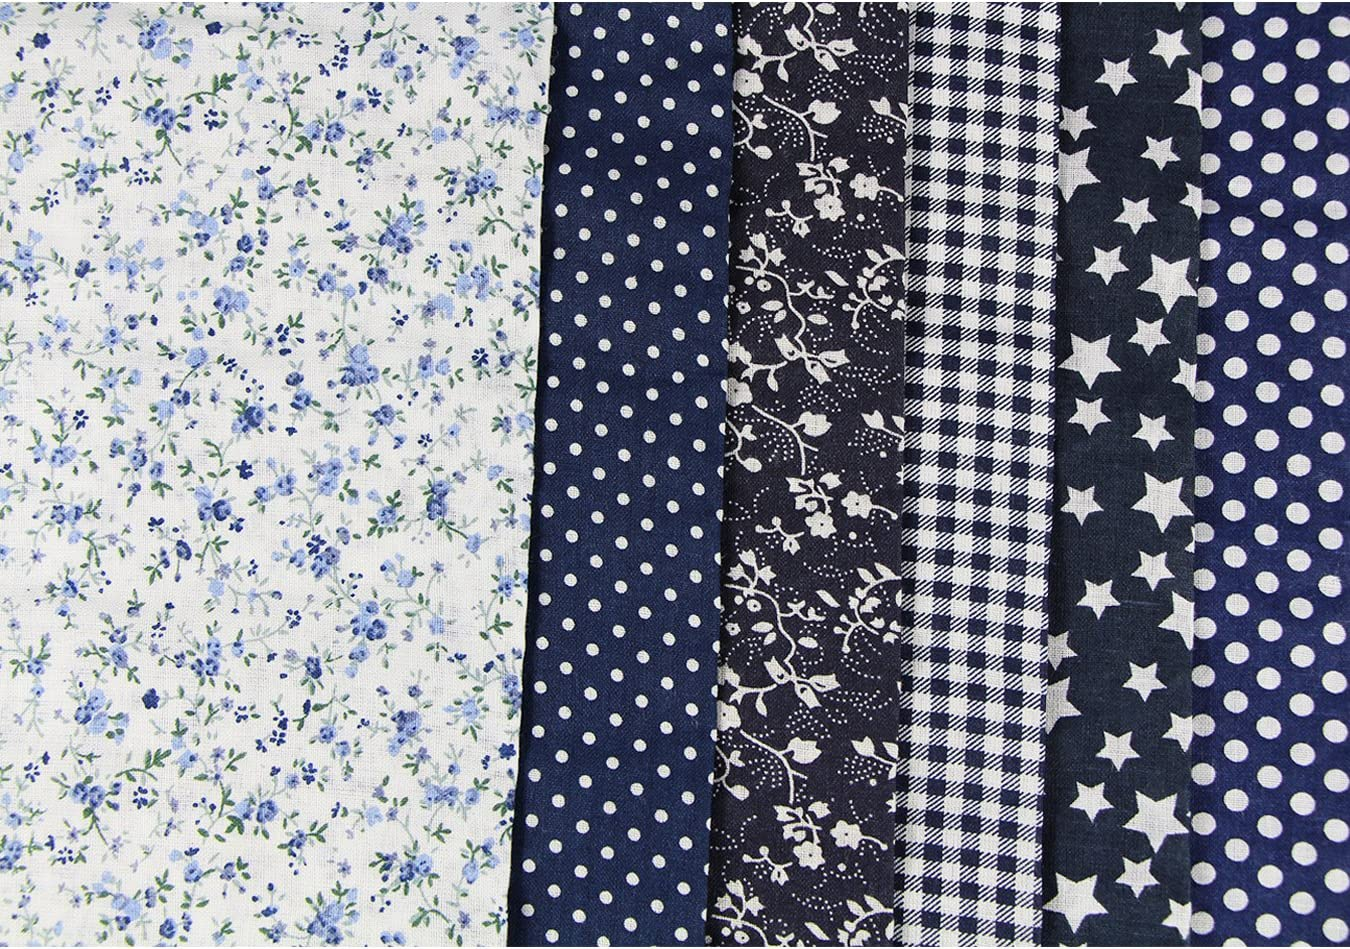 6pcs 50 x 50cm Patchwork Cotton Fabric DIY Handmade Sewing Quilting Fabric Different Designs